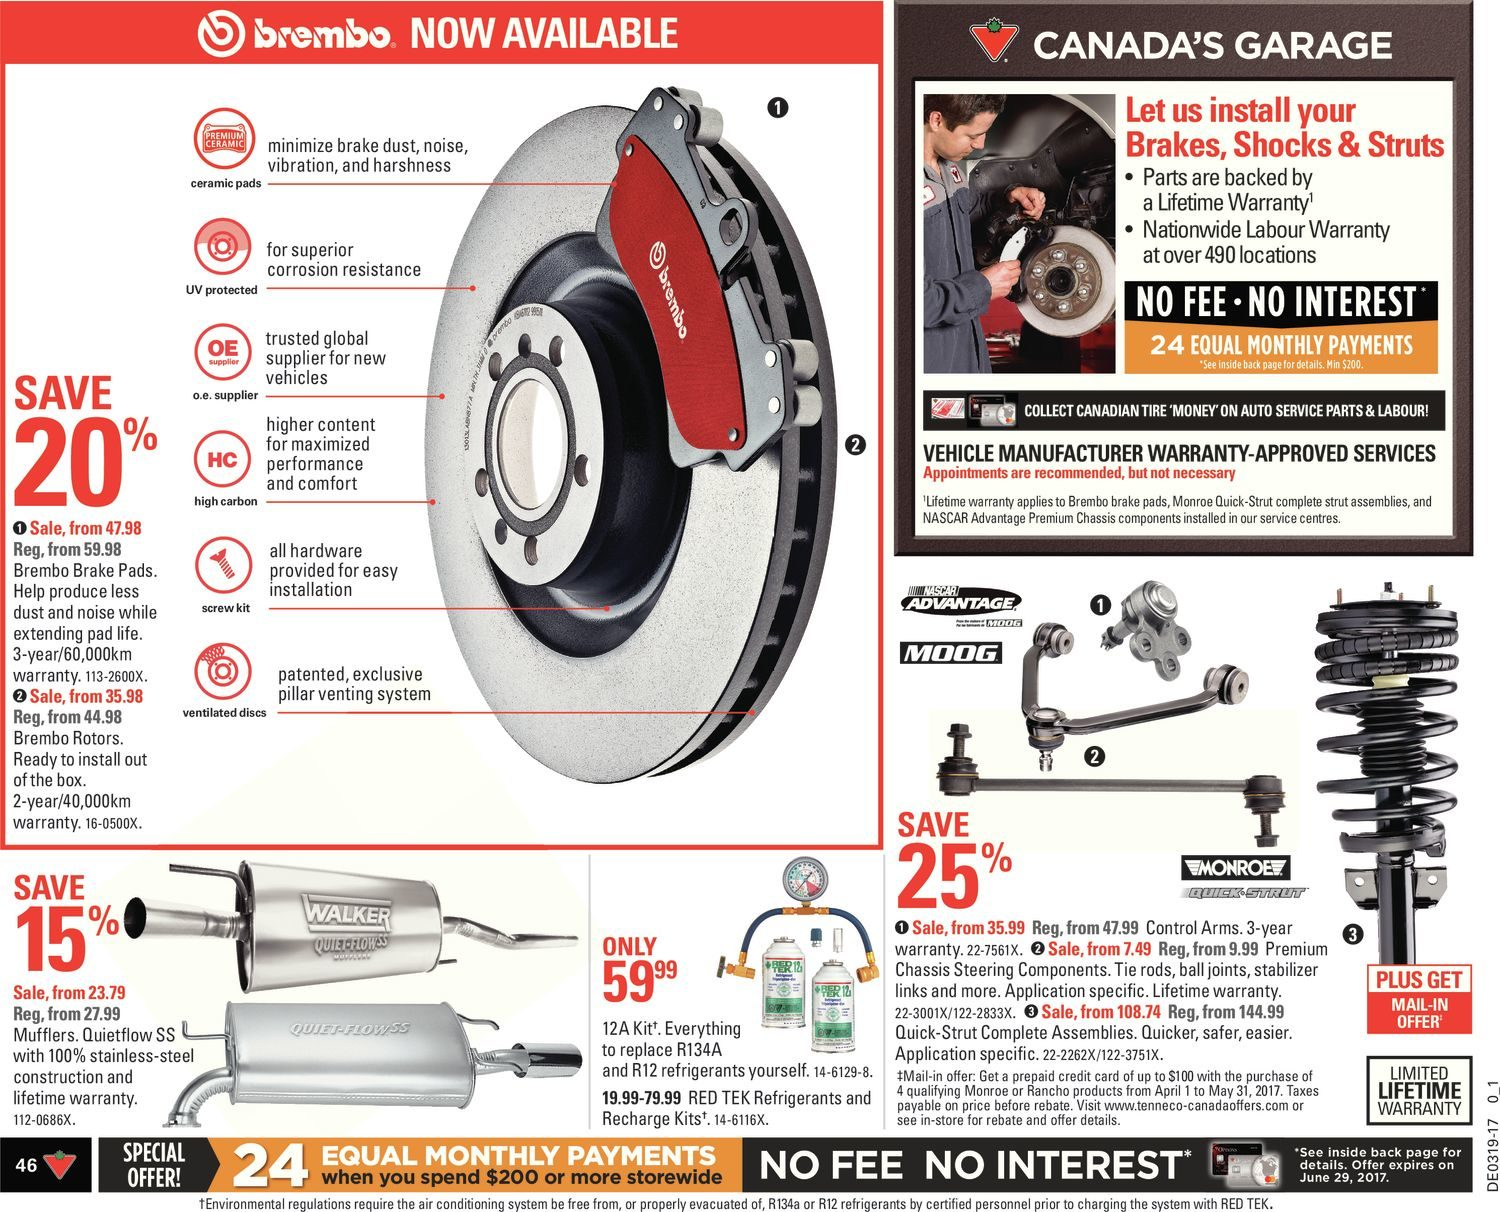 Sofa Legs Canadian Tire Canadian Tire Weekly Flyer Weekly Mom S The Best May 5 11